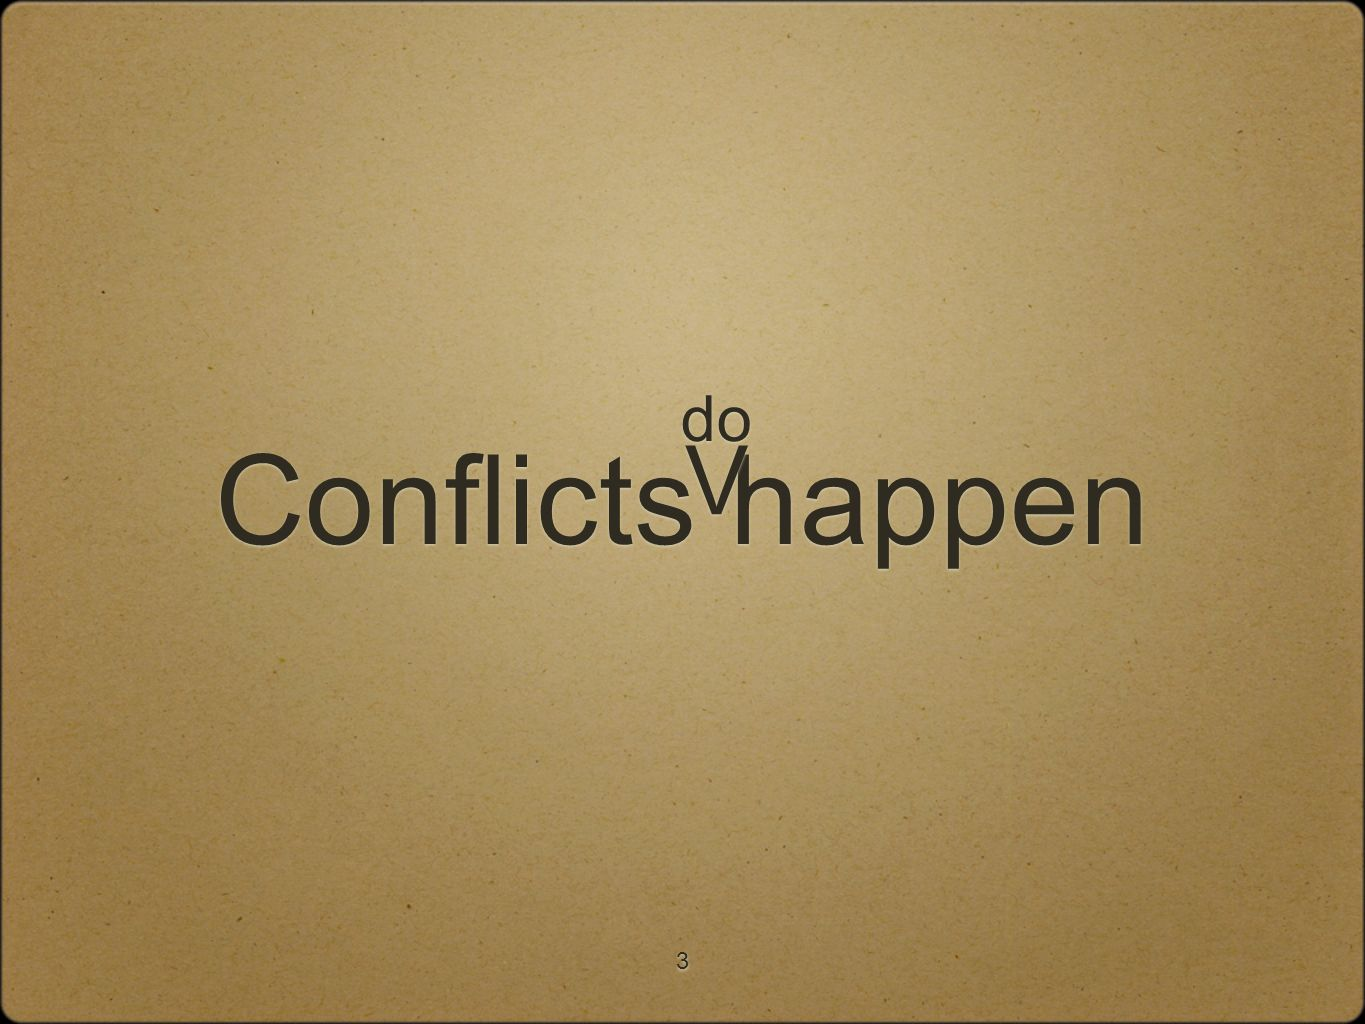 3 Conflicts happen do V V